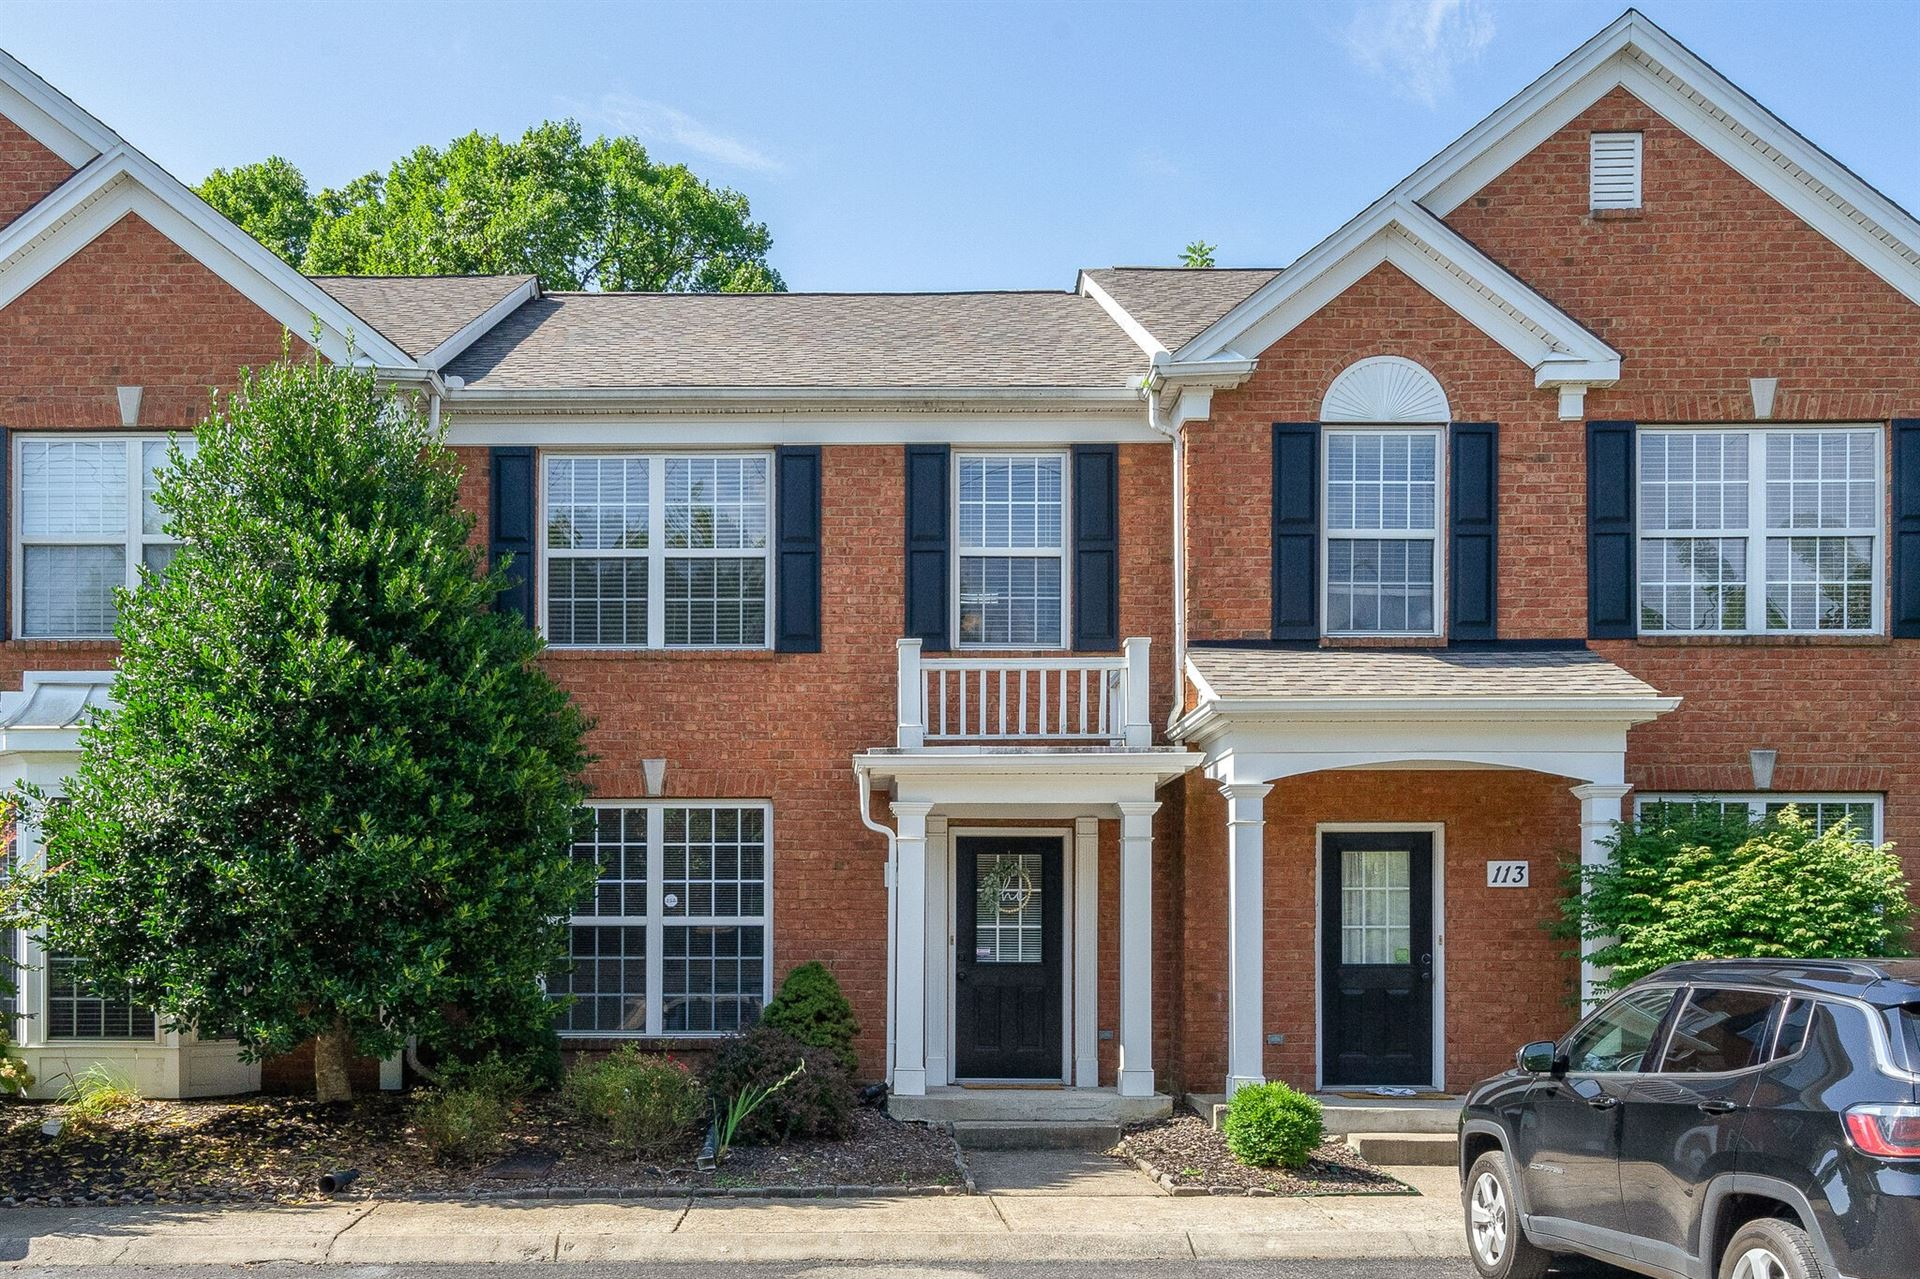 601 Old Hickory Blvd #114, Brentwood, TN 37027 - MLS#: 2274332